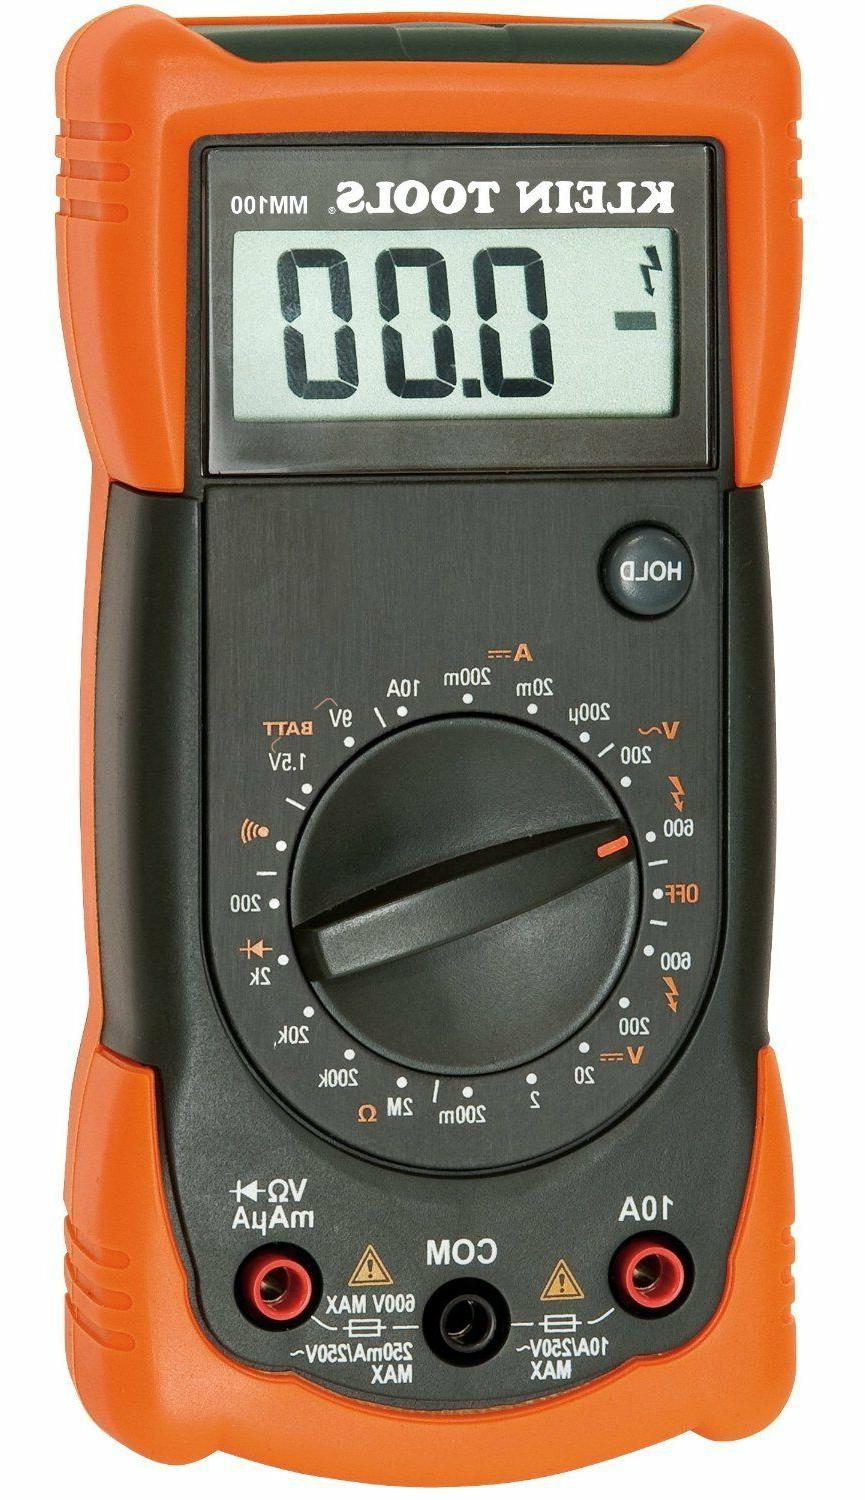 mm300 manual ranging multimeter replacement for mm100